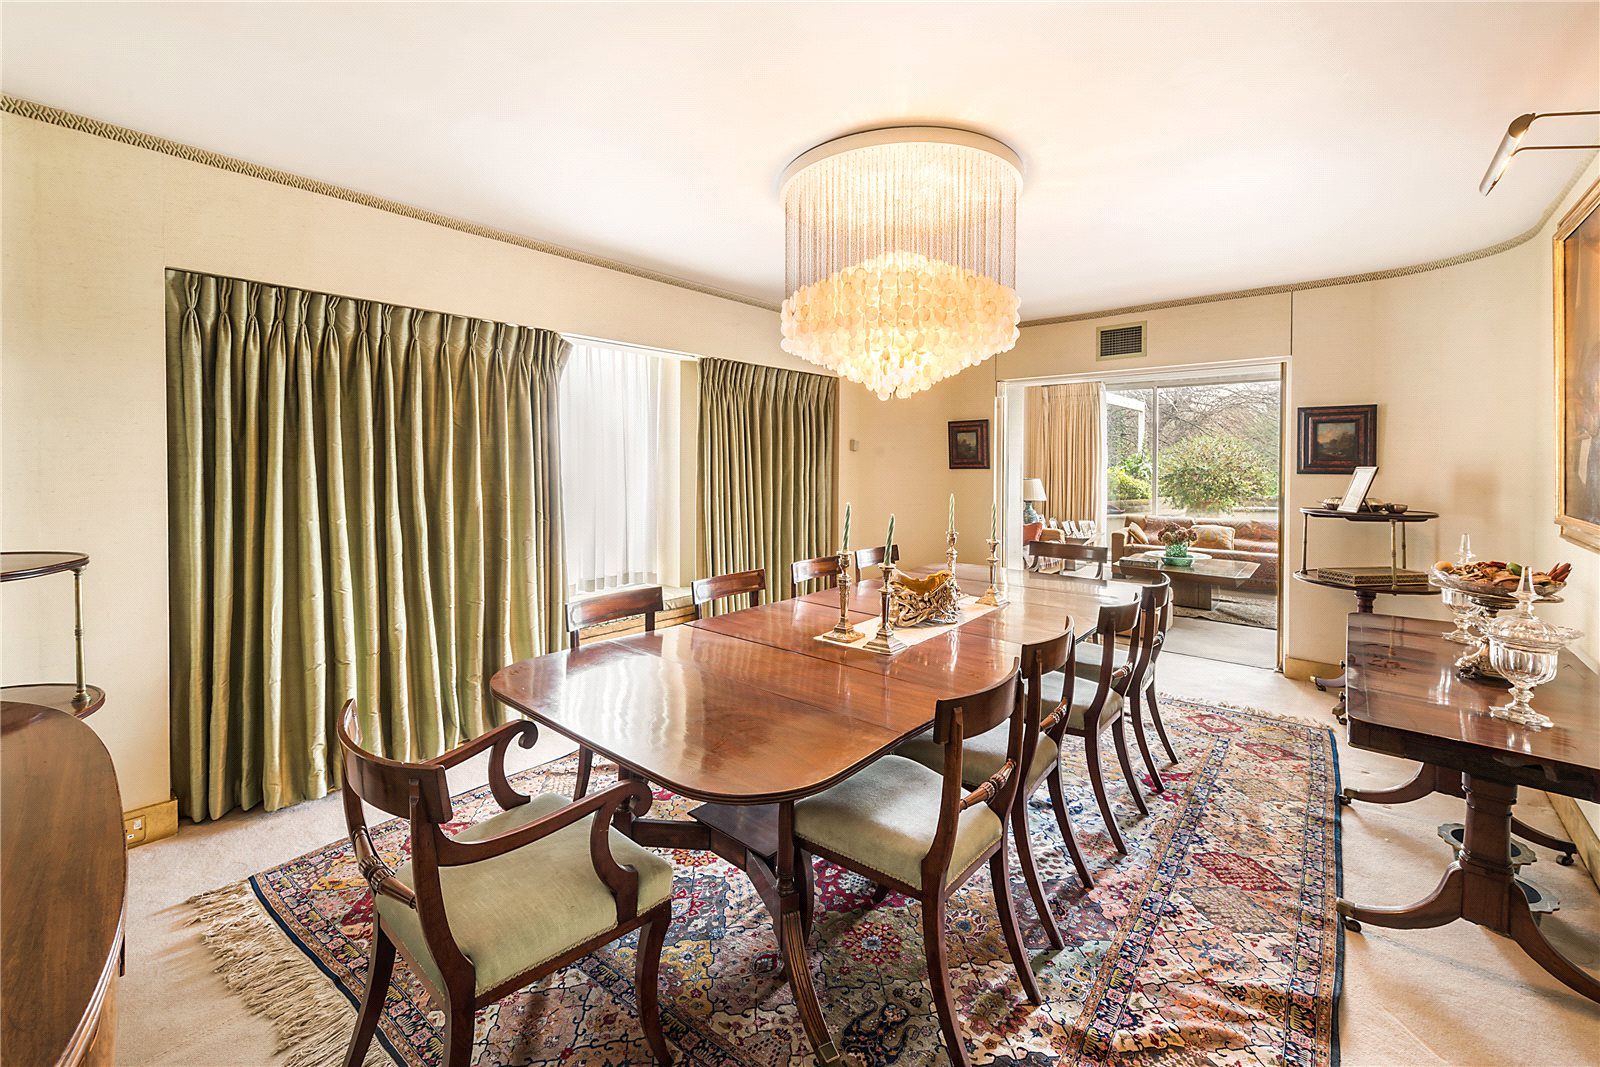 London And Vicinity Real Estate And Homes For Sale Christie S